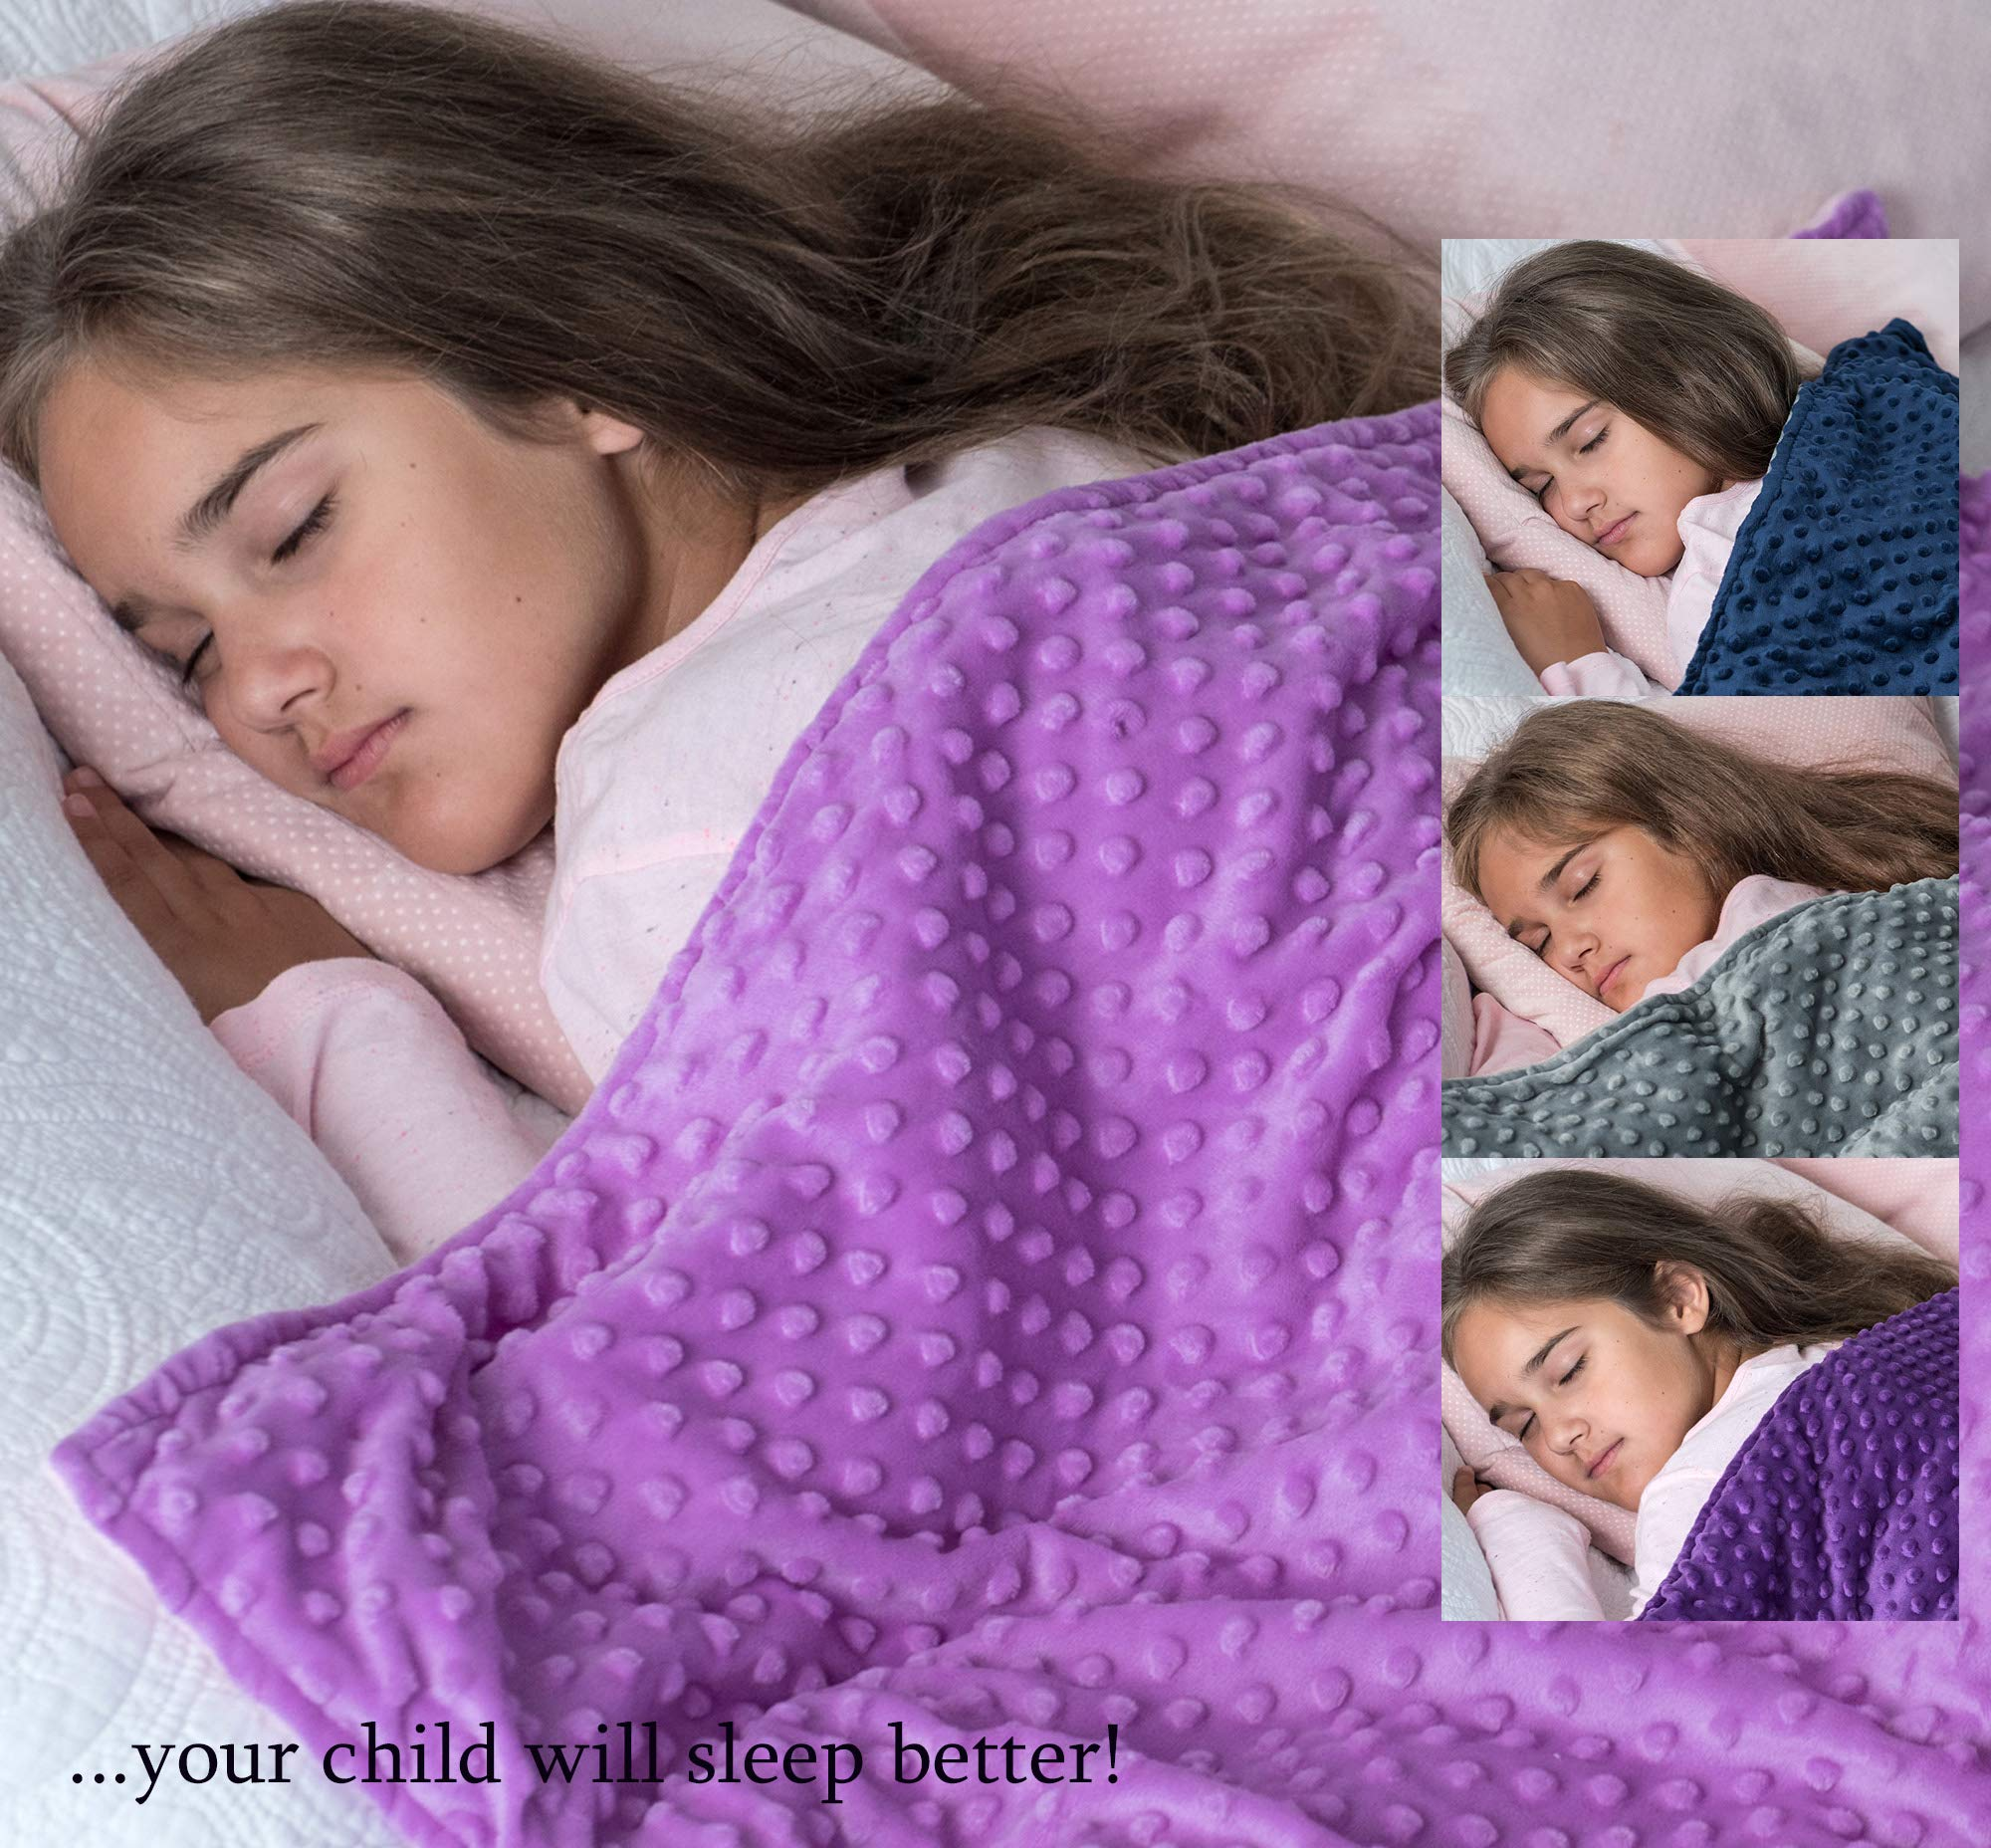 5 lbs Weighted Blanket with Dot Minky Cover for Kids (Inner Light Violet/Cover Violet & Pink, 36''x48'' 5 lbs) by Loved Blanket